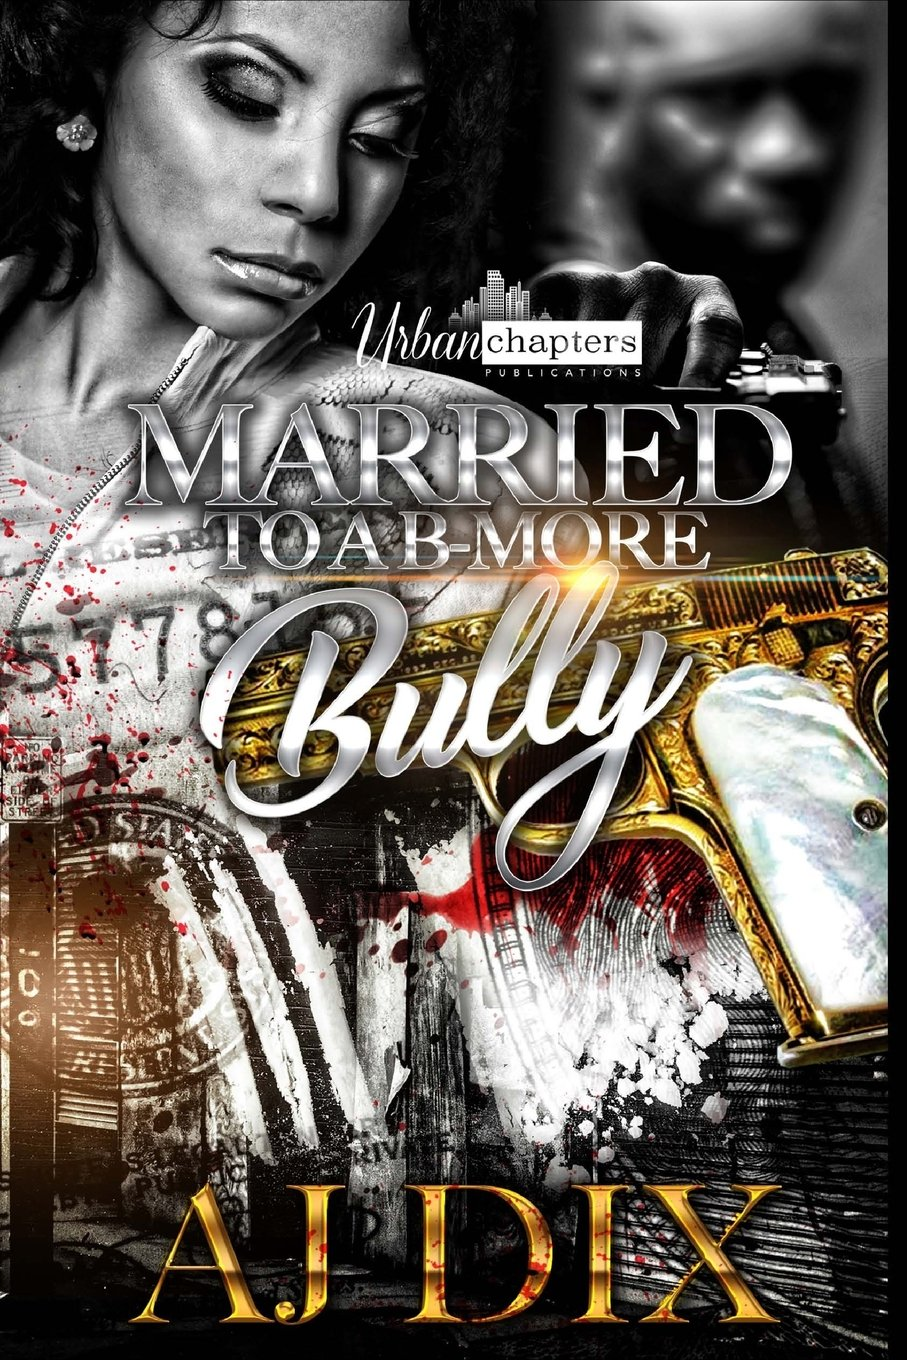 Married To A B-More Bully (Volume 1) PDF